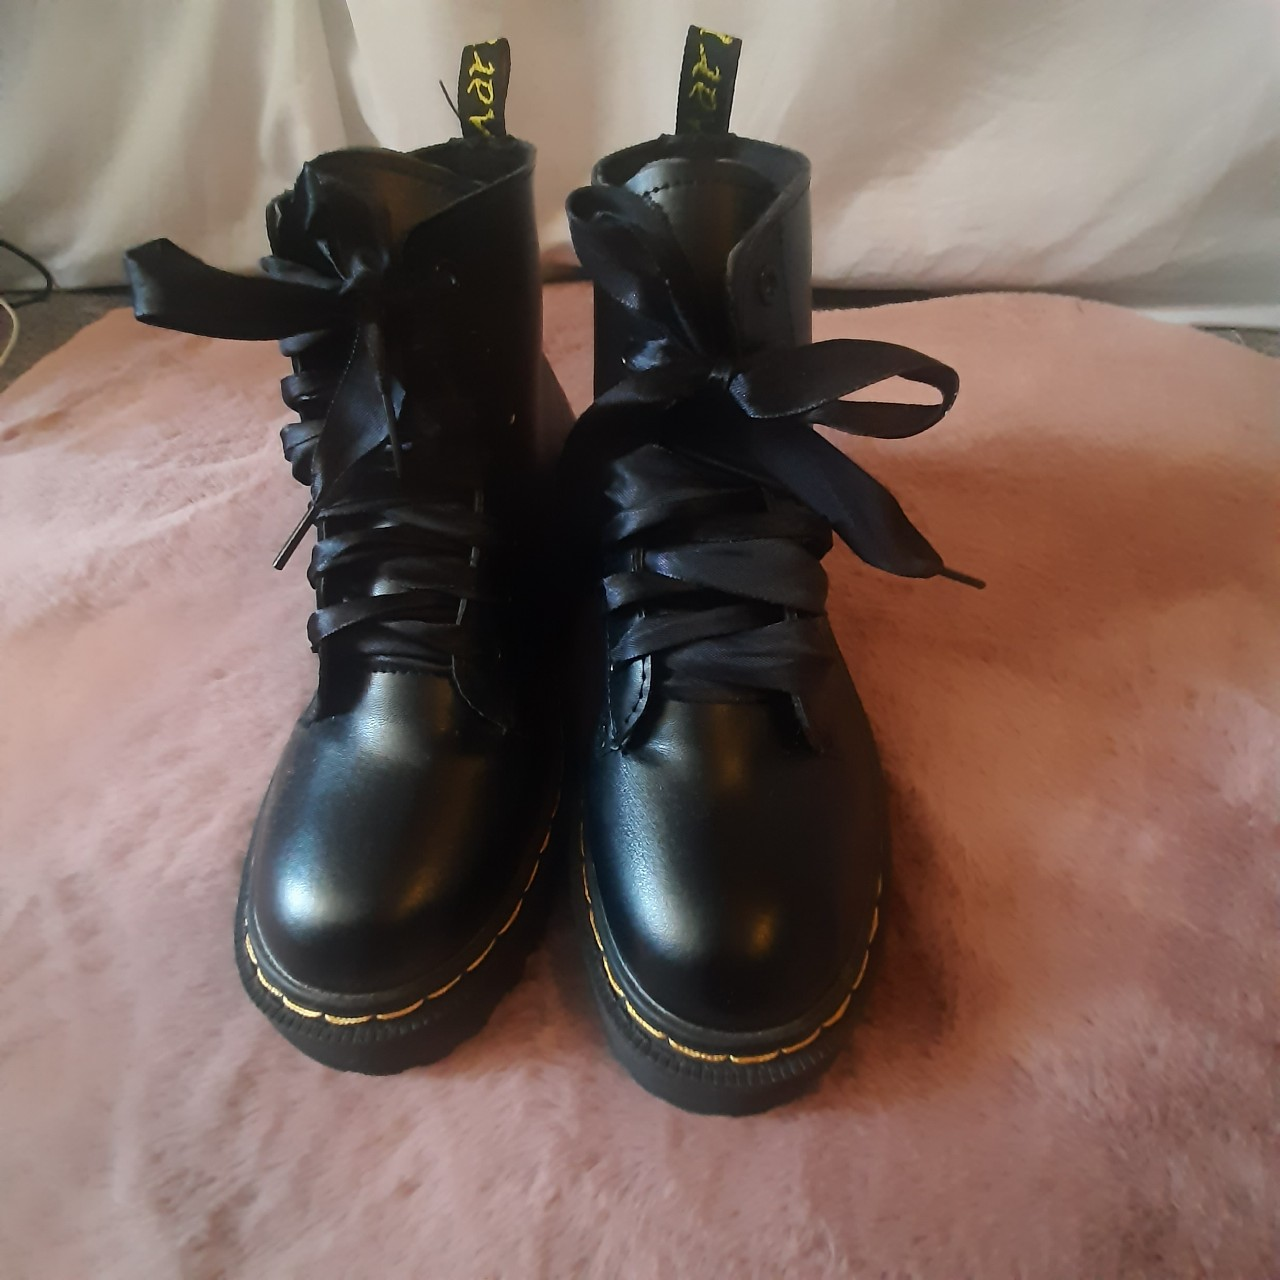 Fake Dr.martens I bought these off